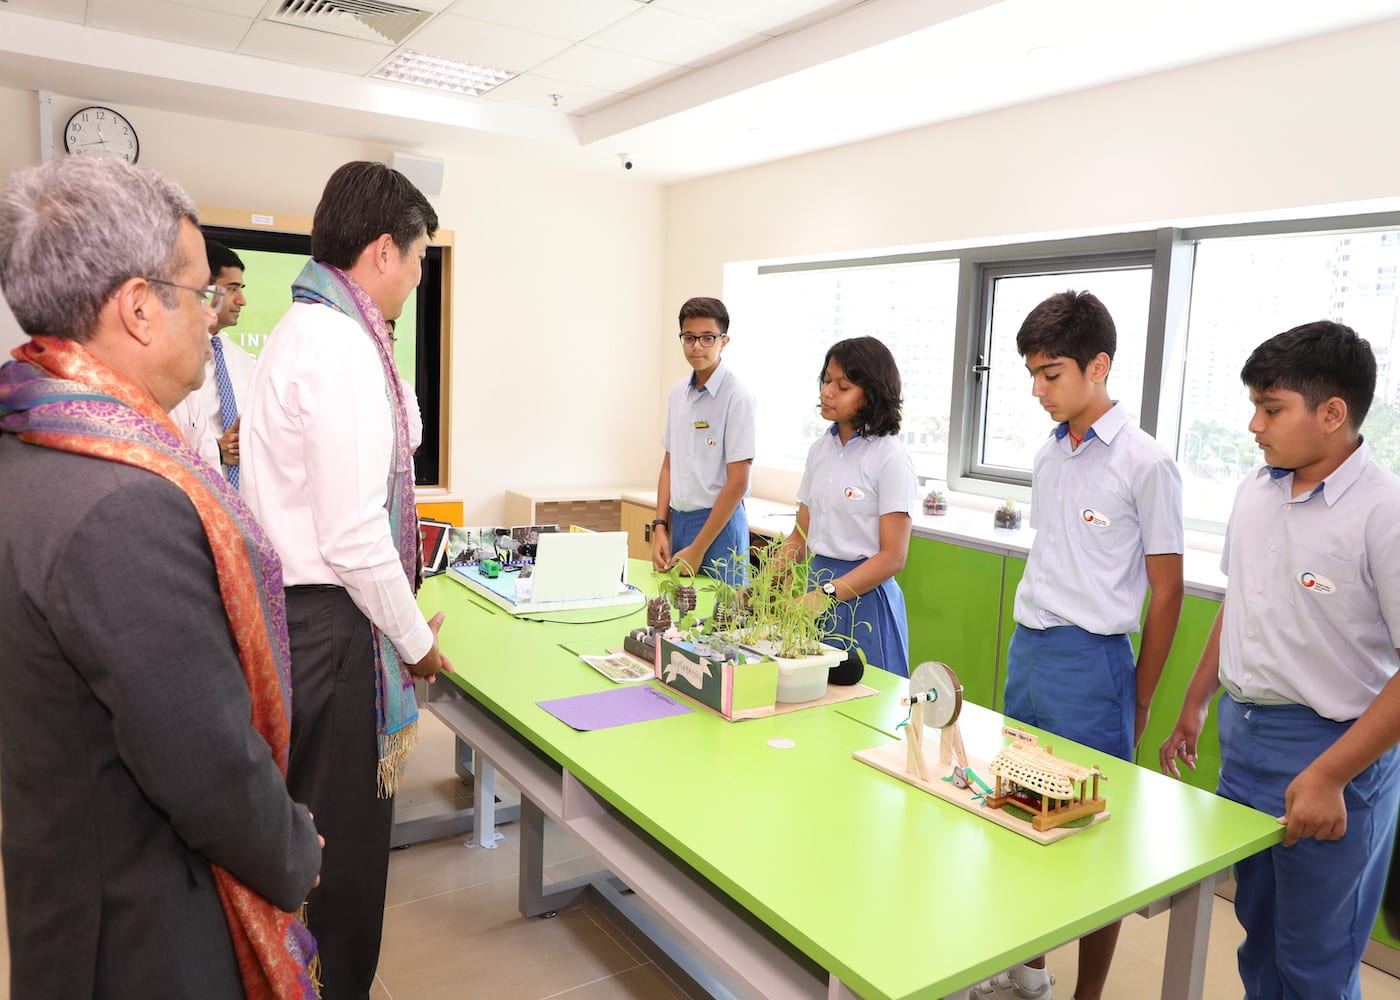 Most sustainable international schools in Singapore: GIIS